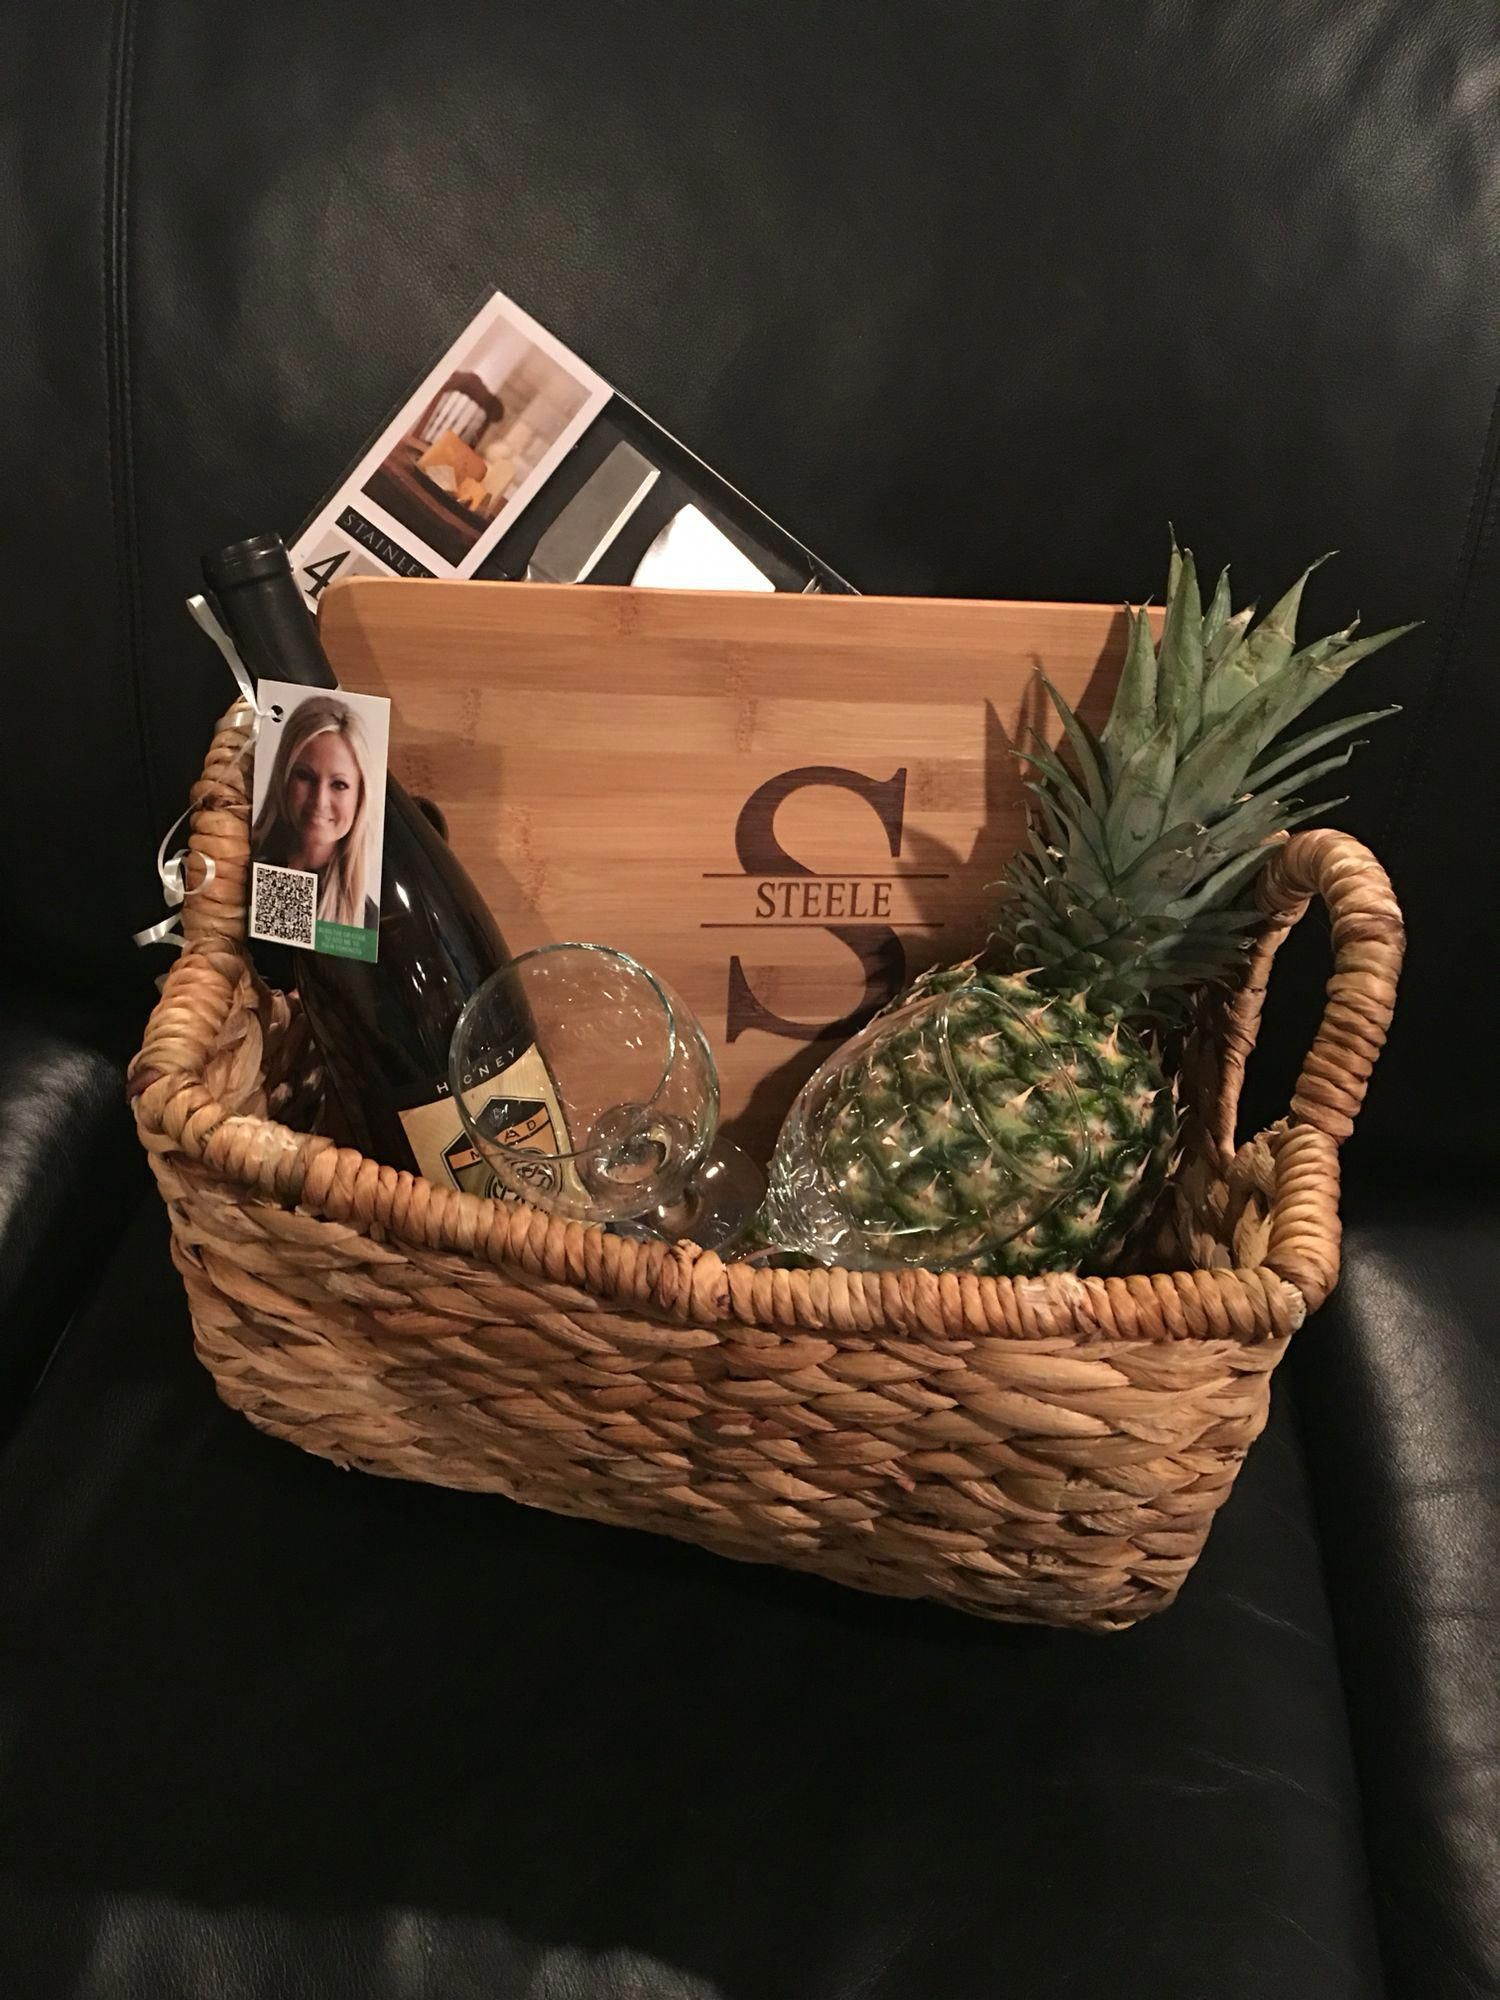 Trying To Find Entertaining Commercial Items To Produce A Consumer Or Your Workforce Taylor Diesel Ha Real Estate Closing Gifts Realestate Gifts Closing Gifts